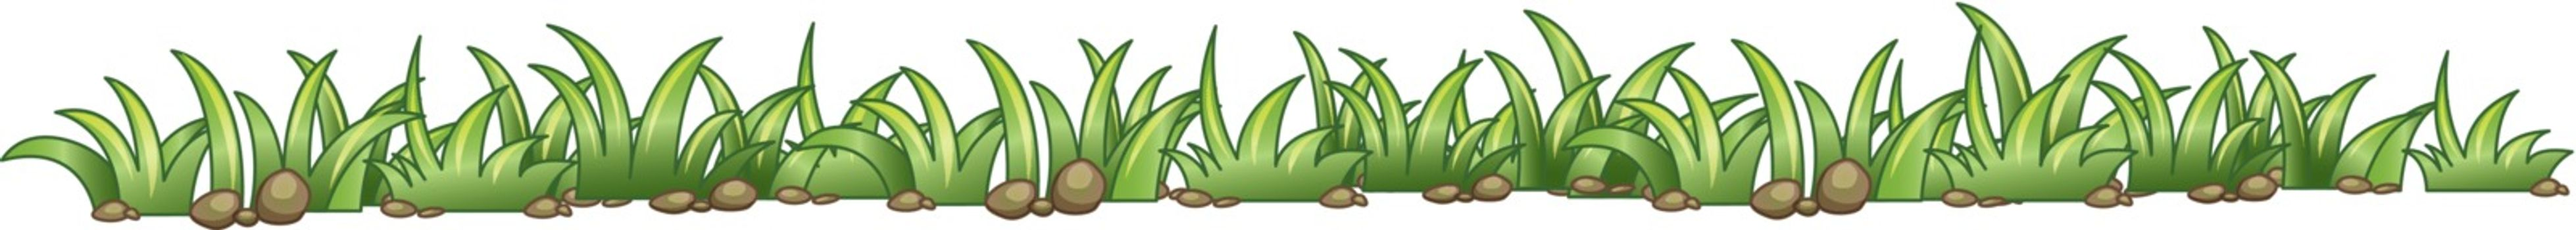 Illustration of a grass texture